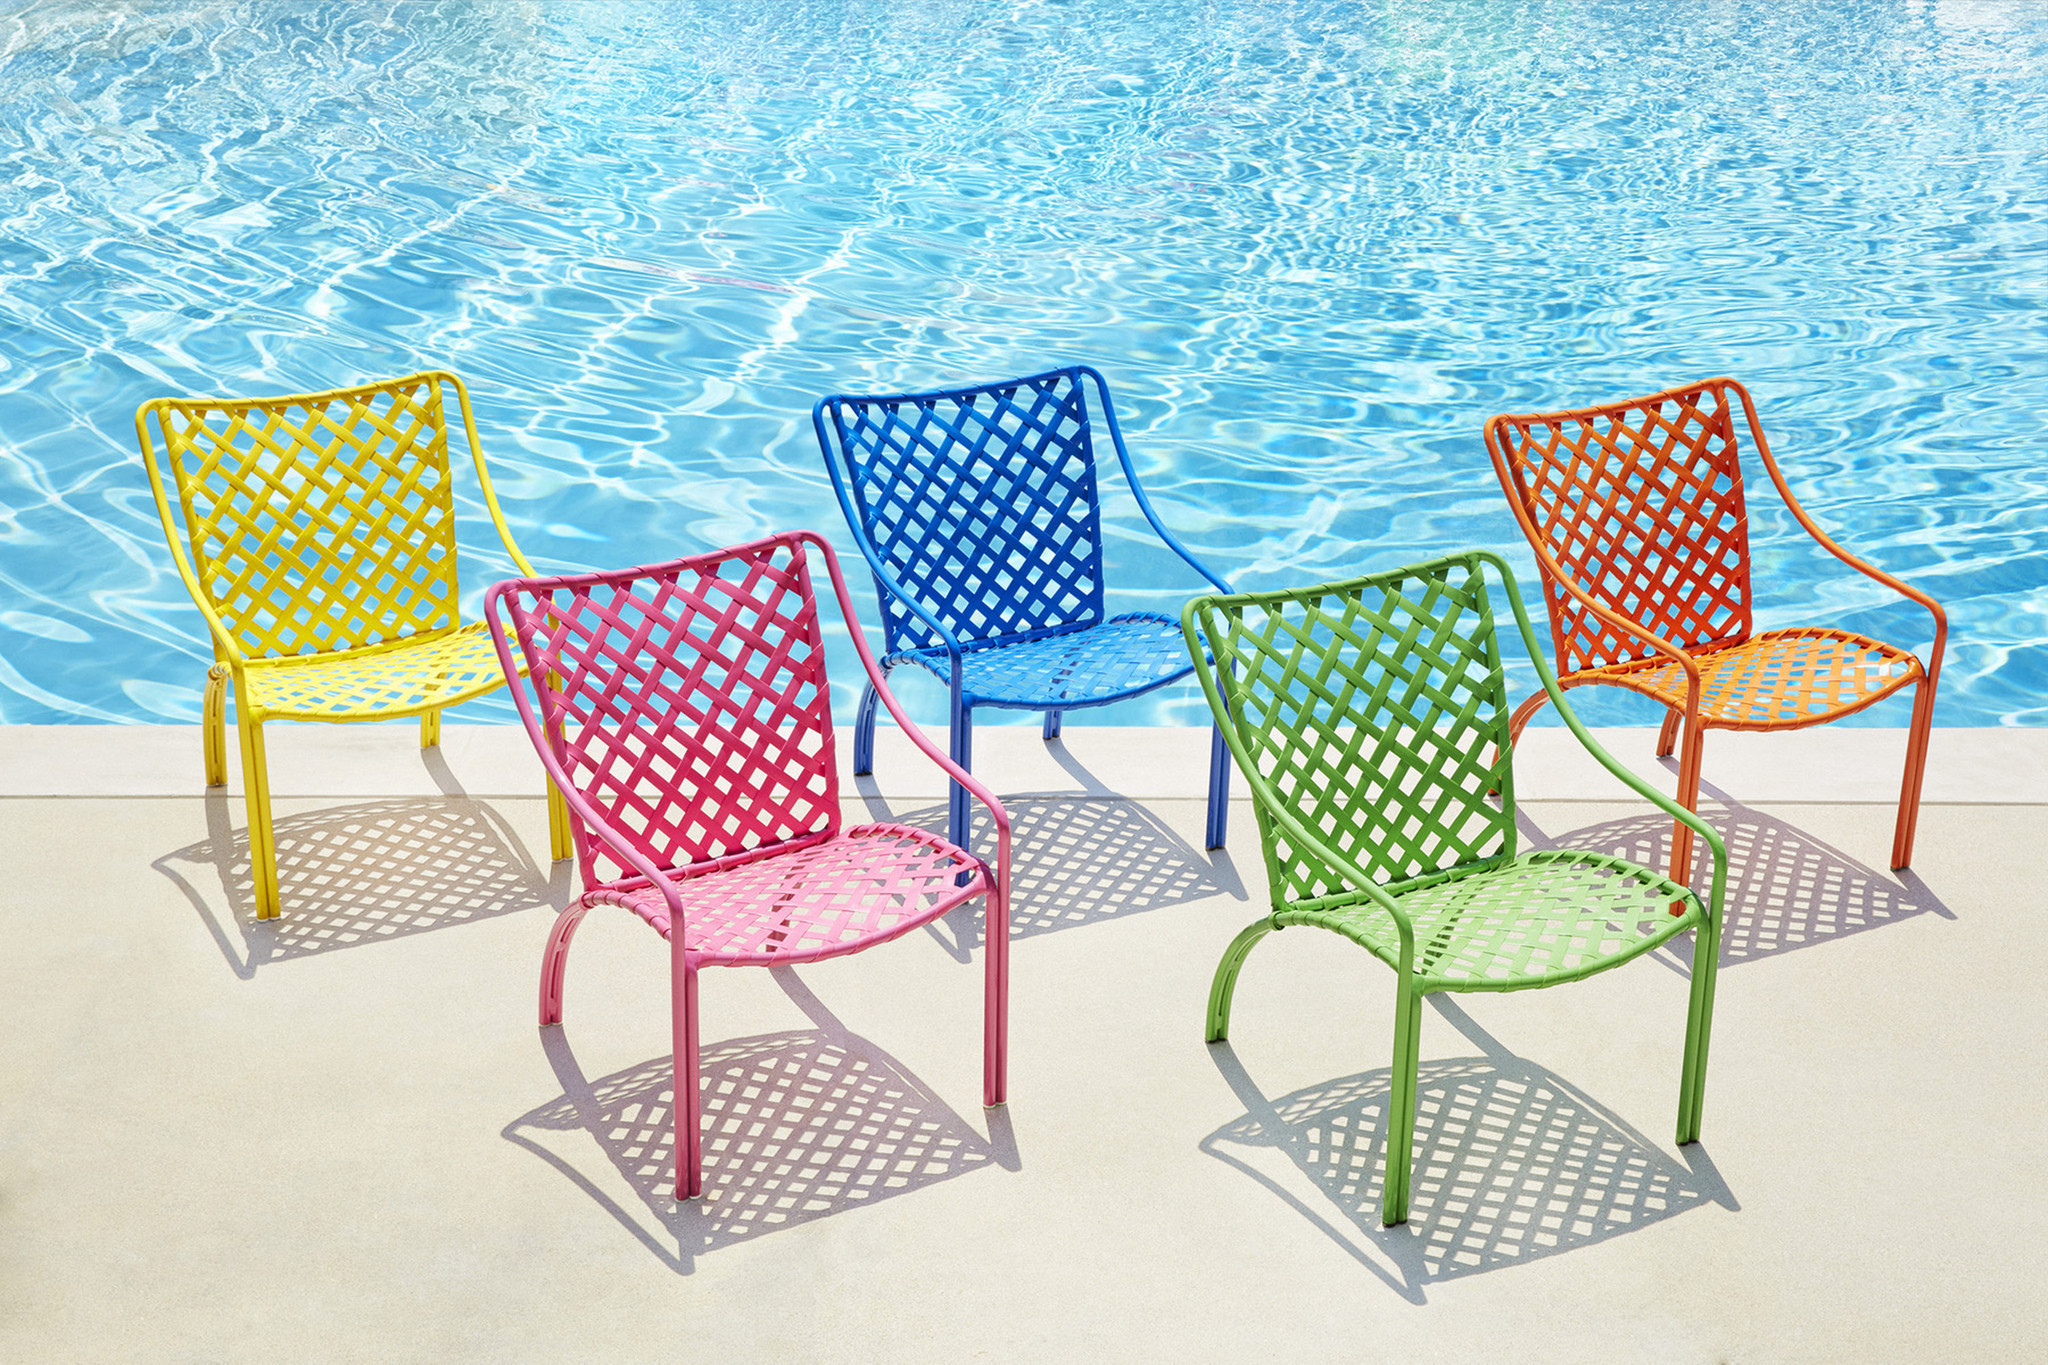 Outdoor furniture designs that are durable and brighten your yard